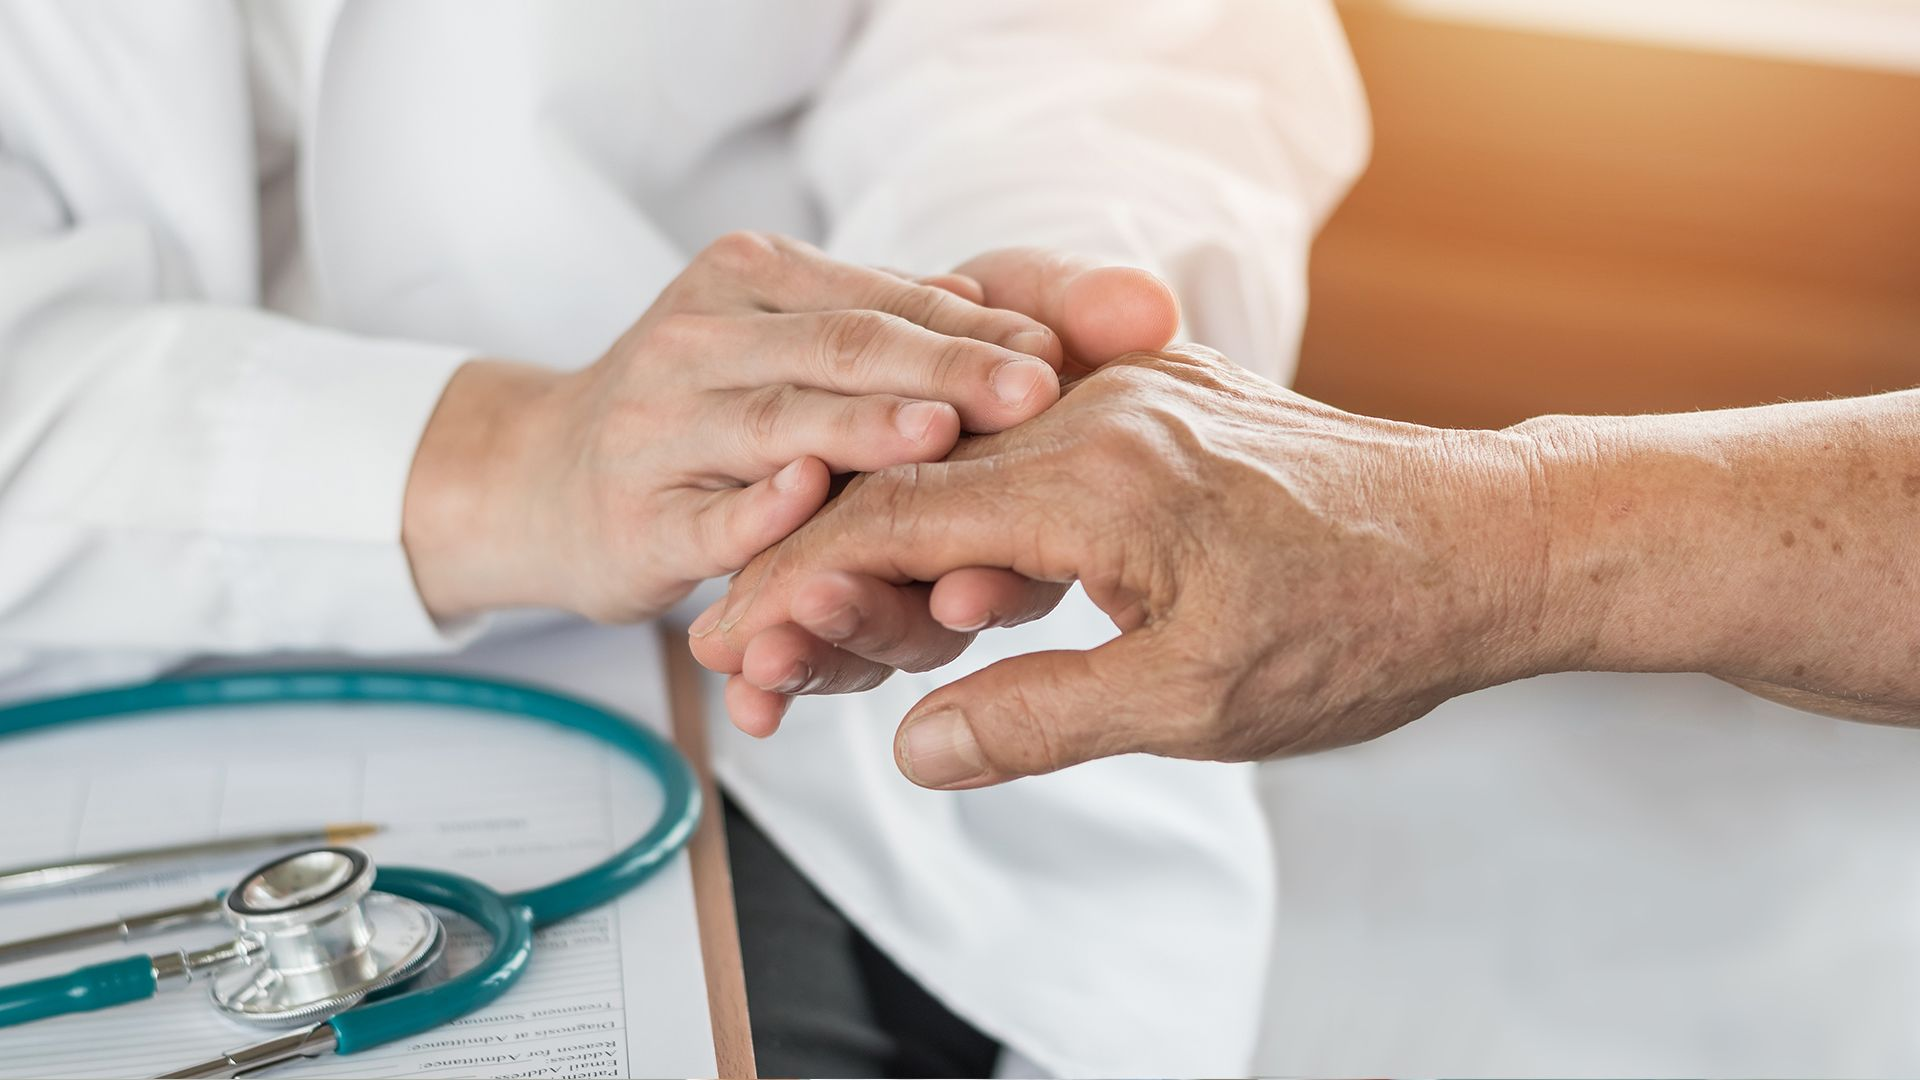 6 Questions to Ask Your Doctor About Rheumatoid Arthritis - Sharecare